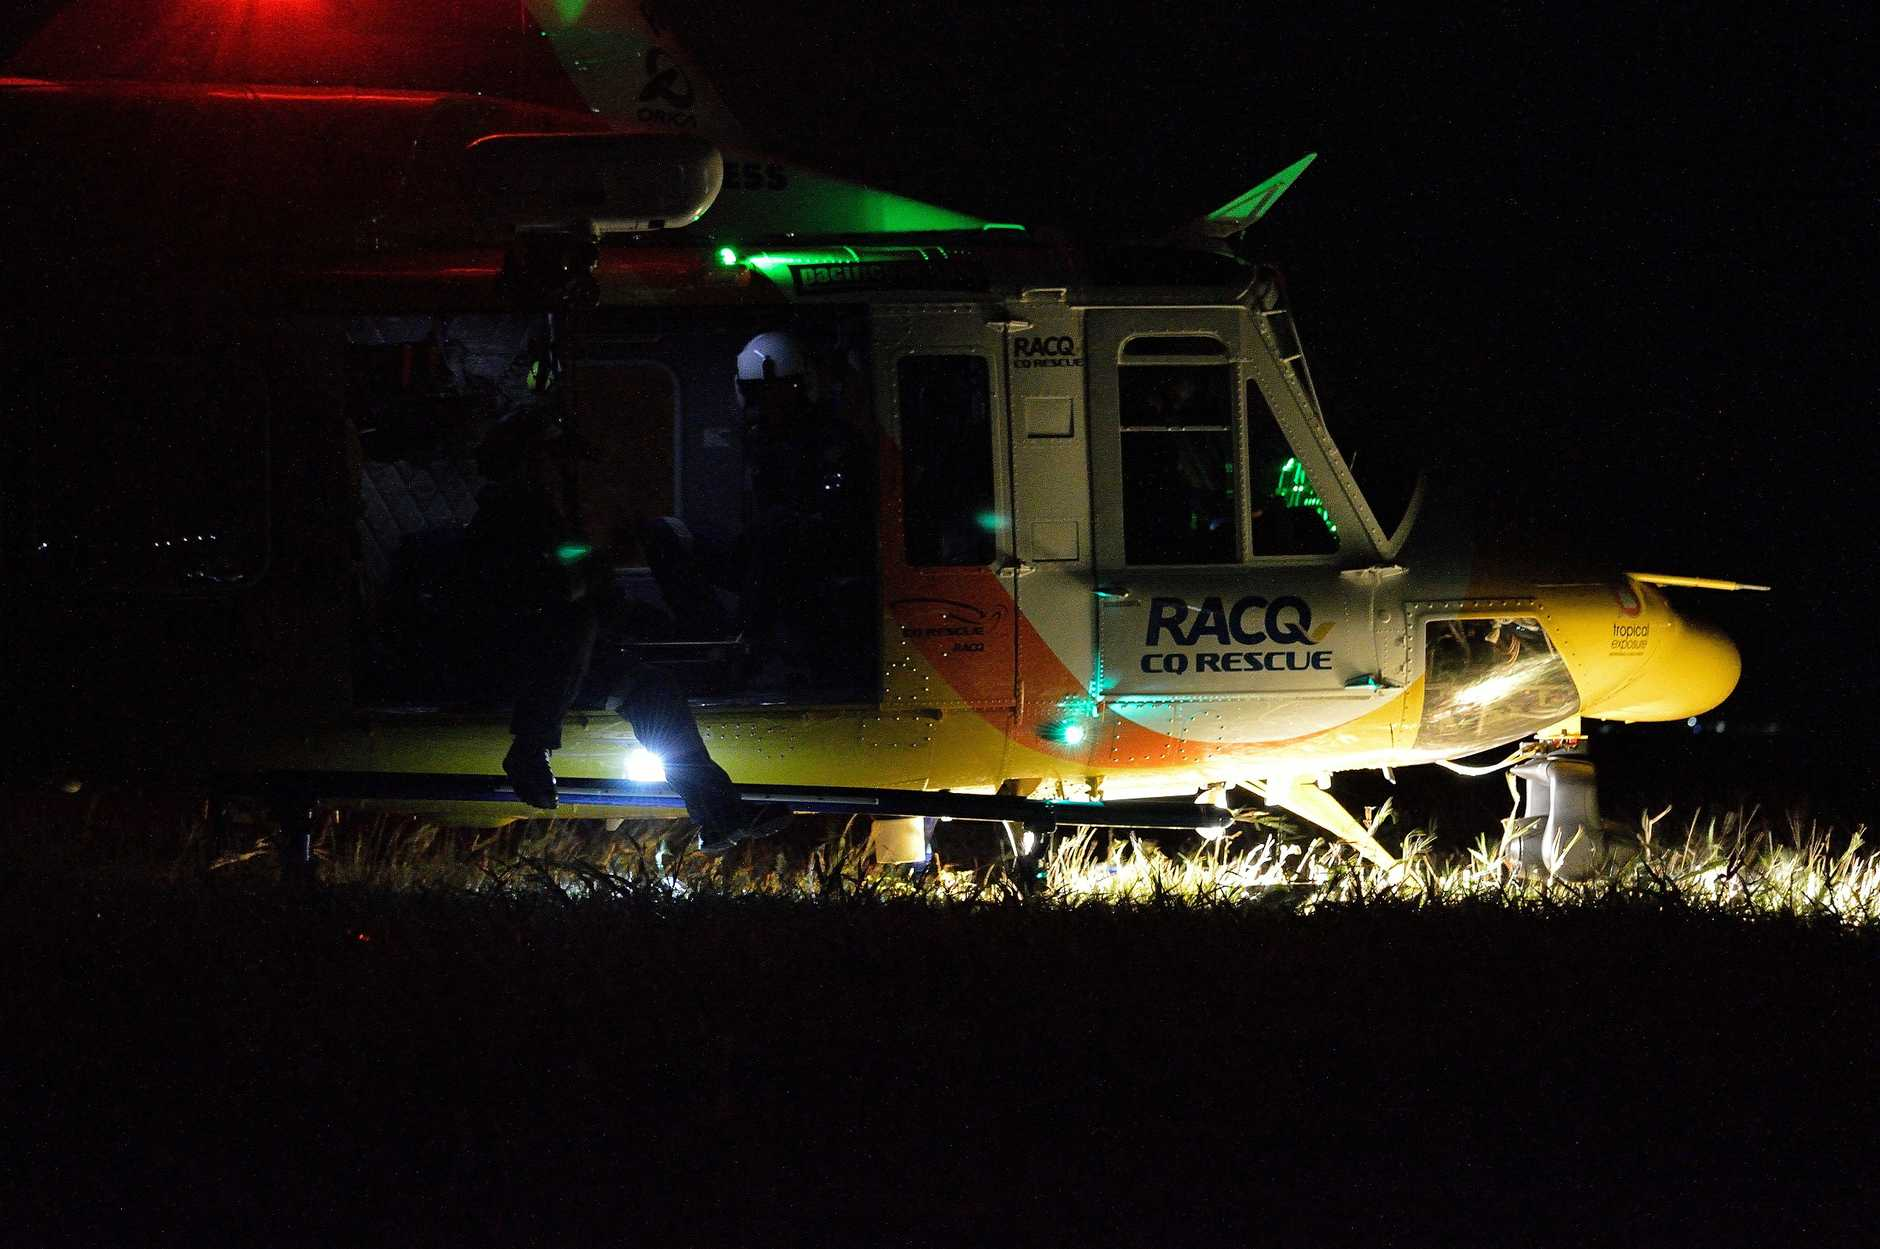 RACQ CQ Rescue helicopter